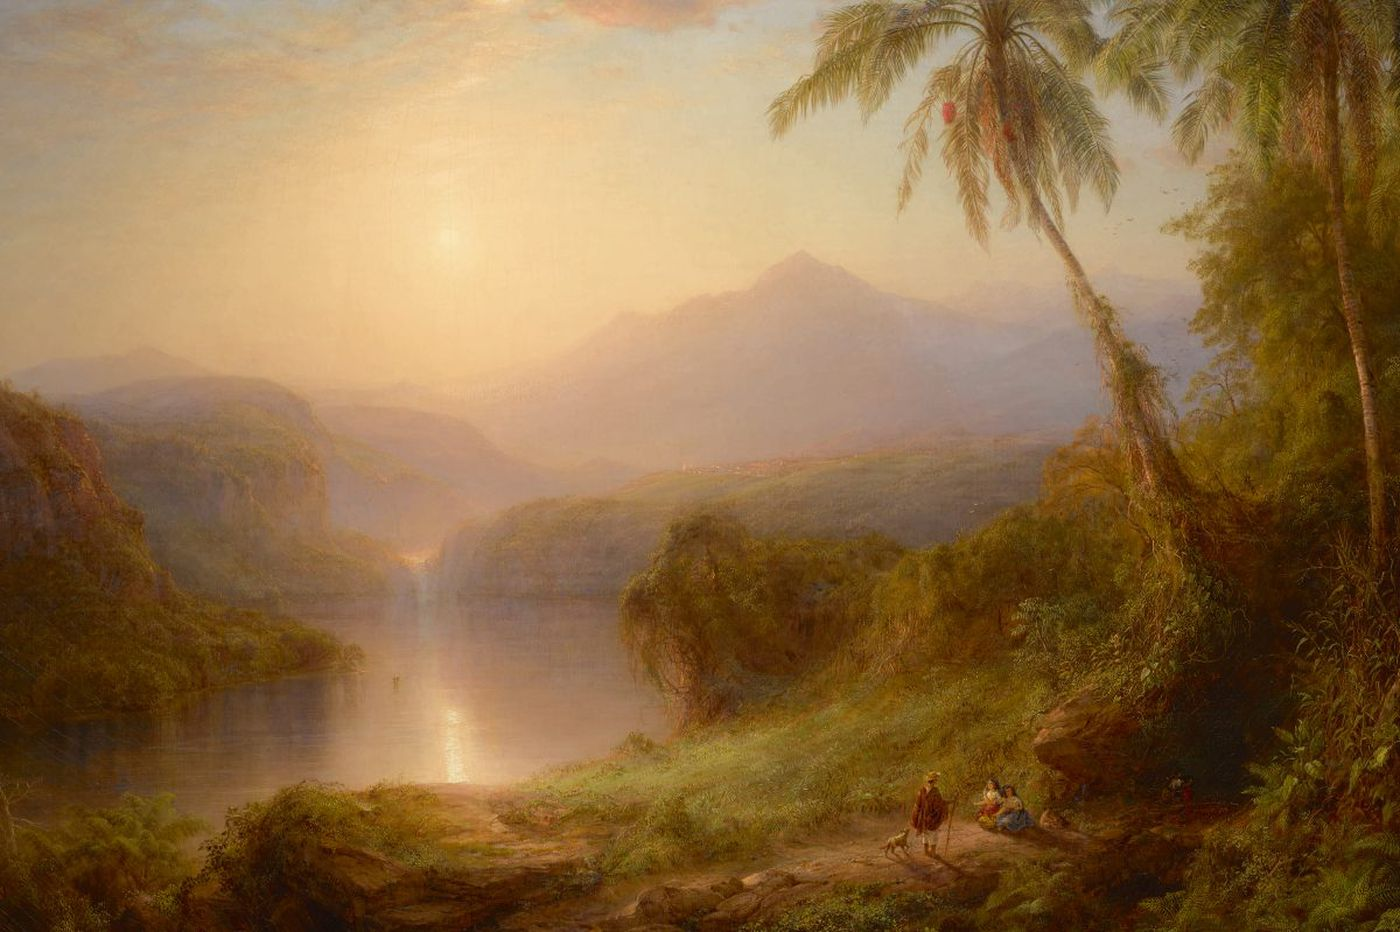 PAFA acquires major Hudson River School painting, invites all of Berkshire, Mass., to visit it free forever